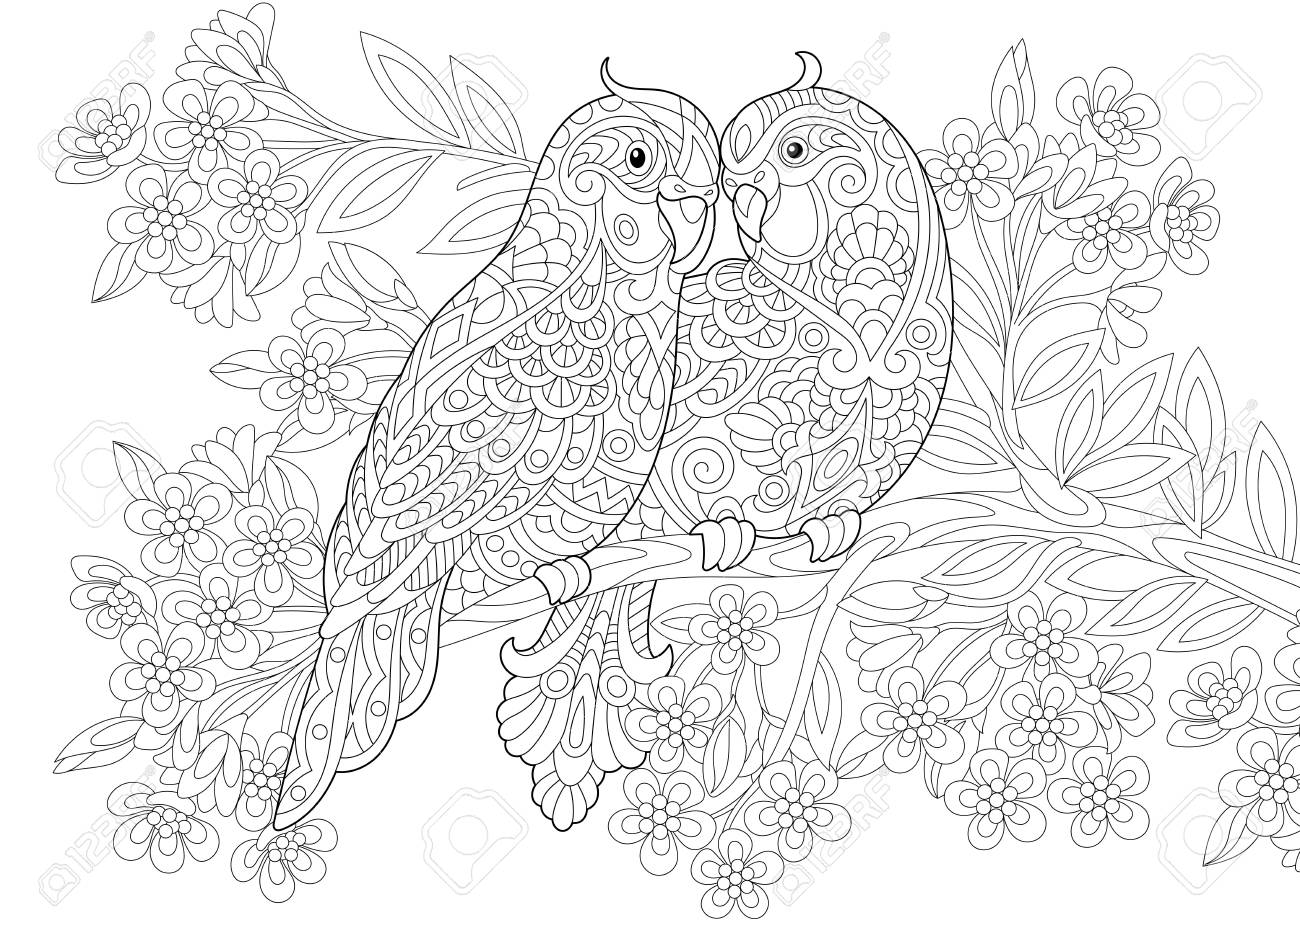 Coloring Page Of Two Parrots In Love And Floral Background With